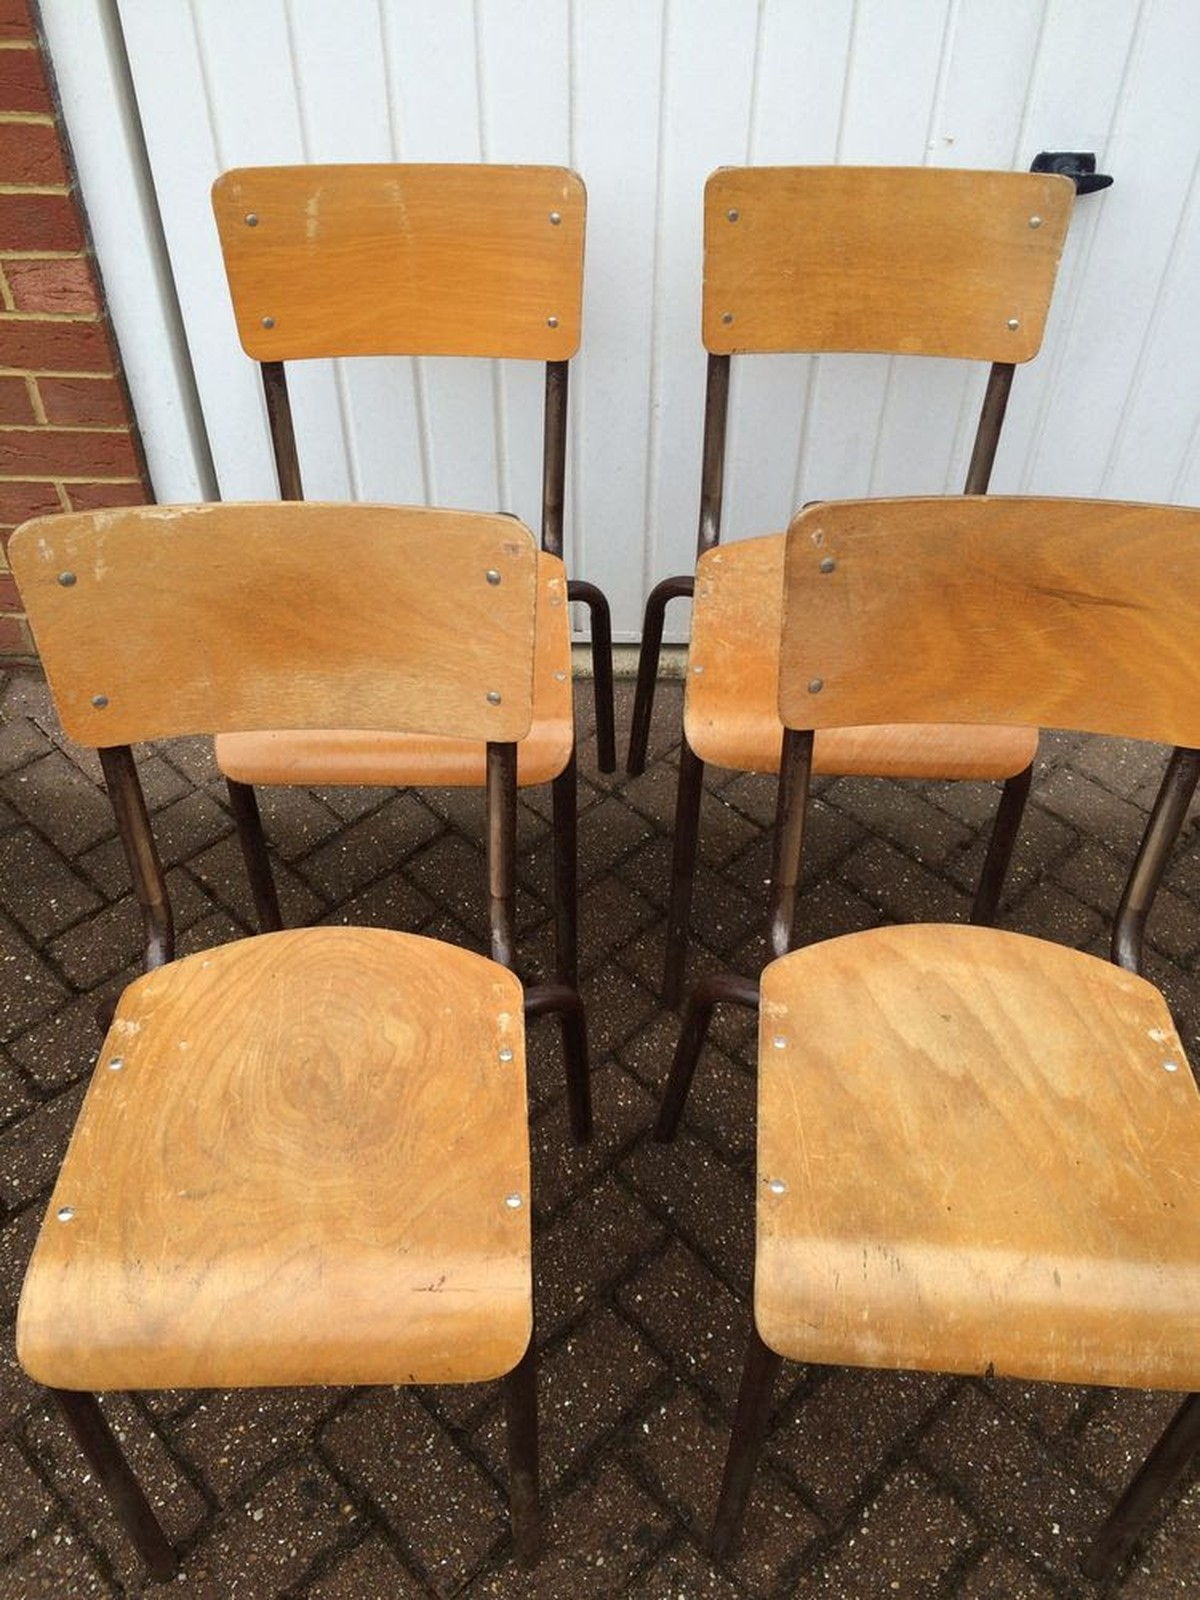 Secondhand Chairs and Tables  Retro Vintage or Antique